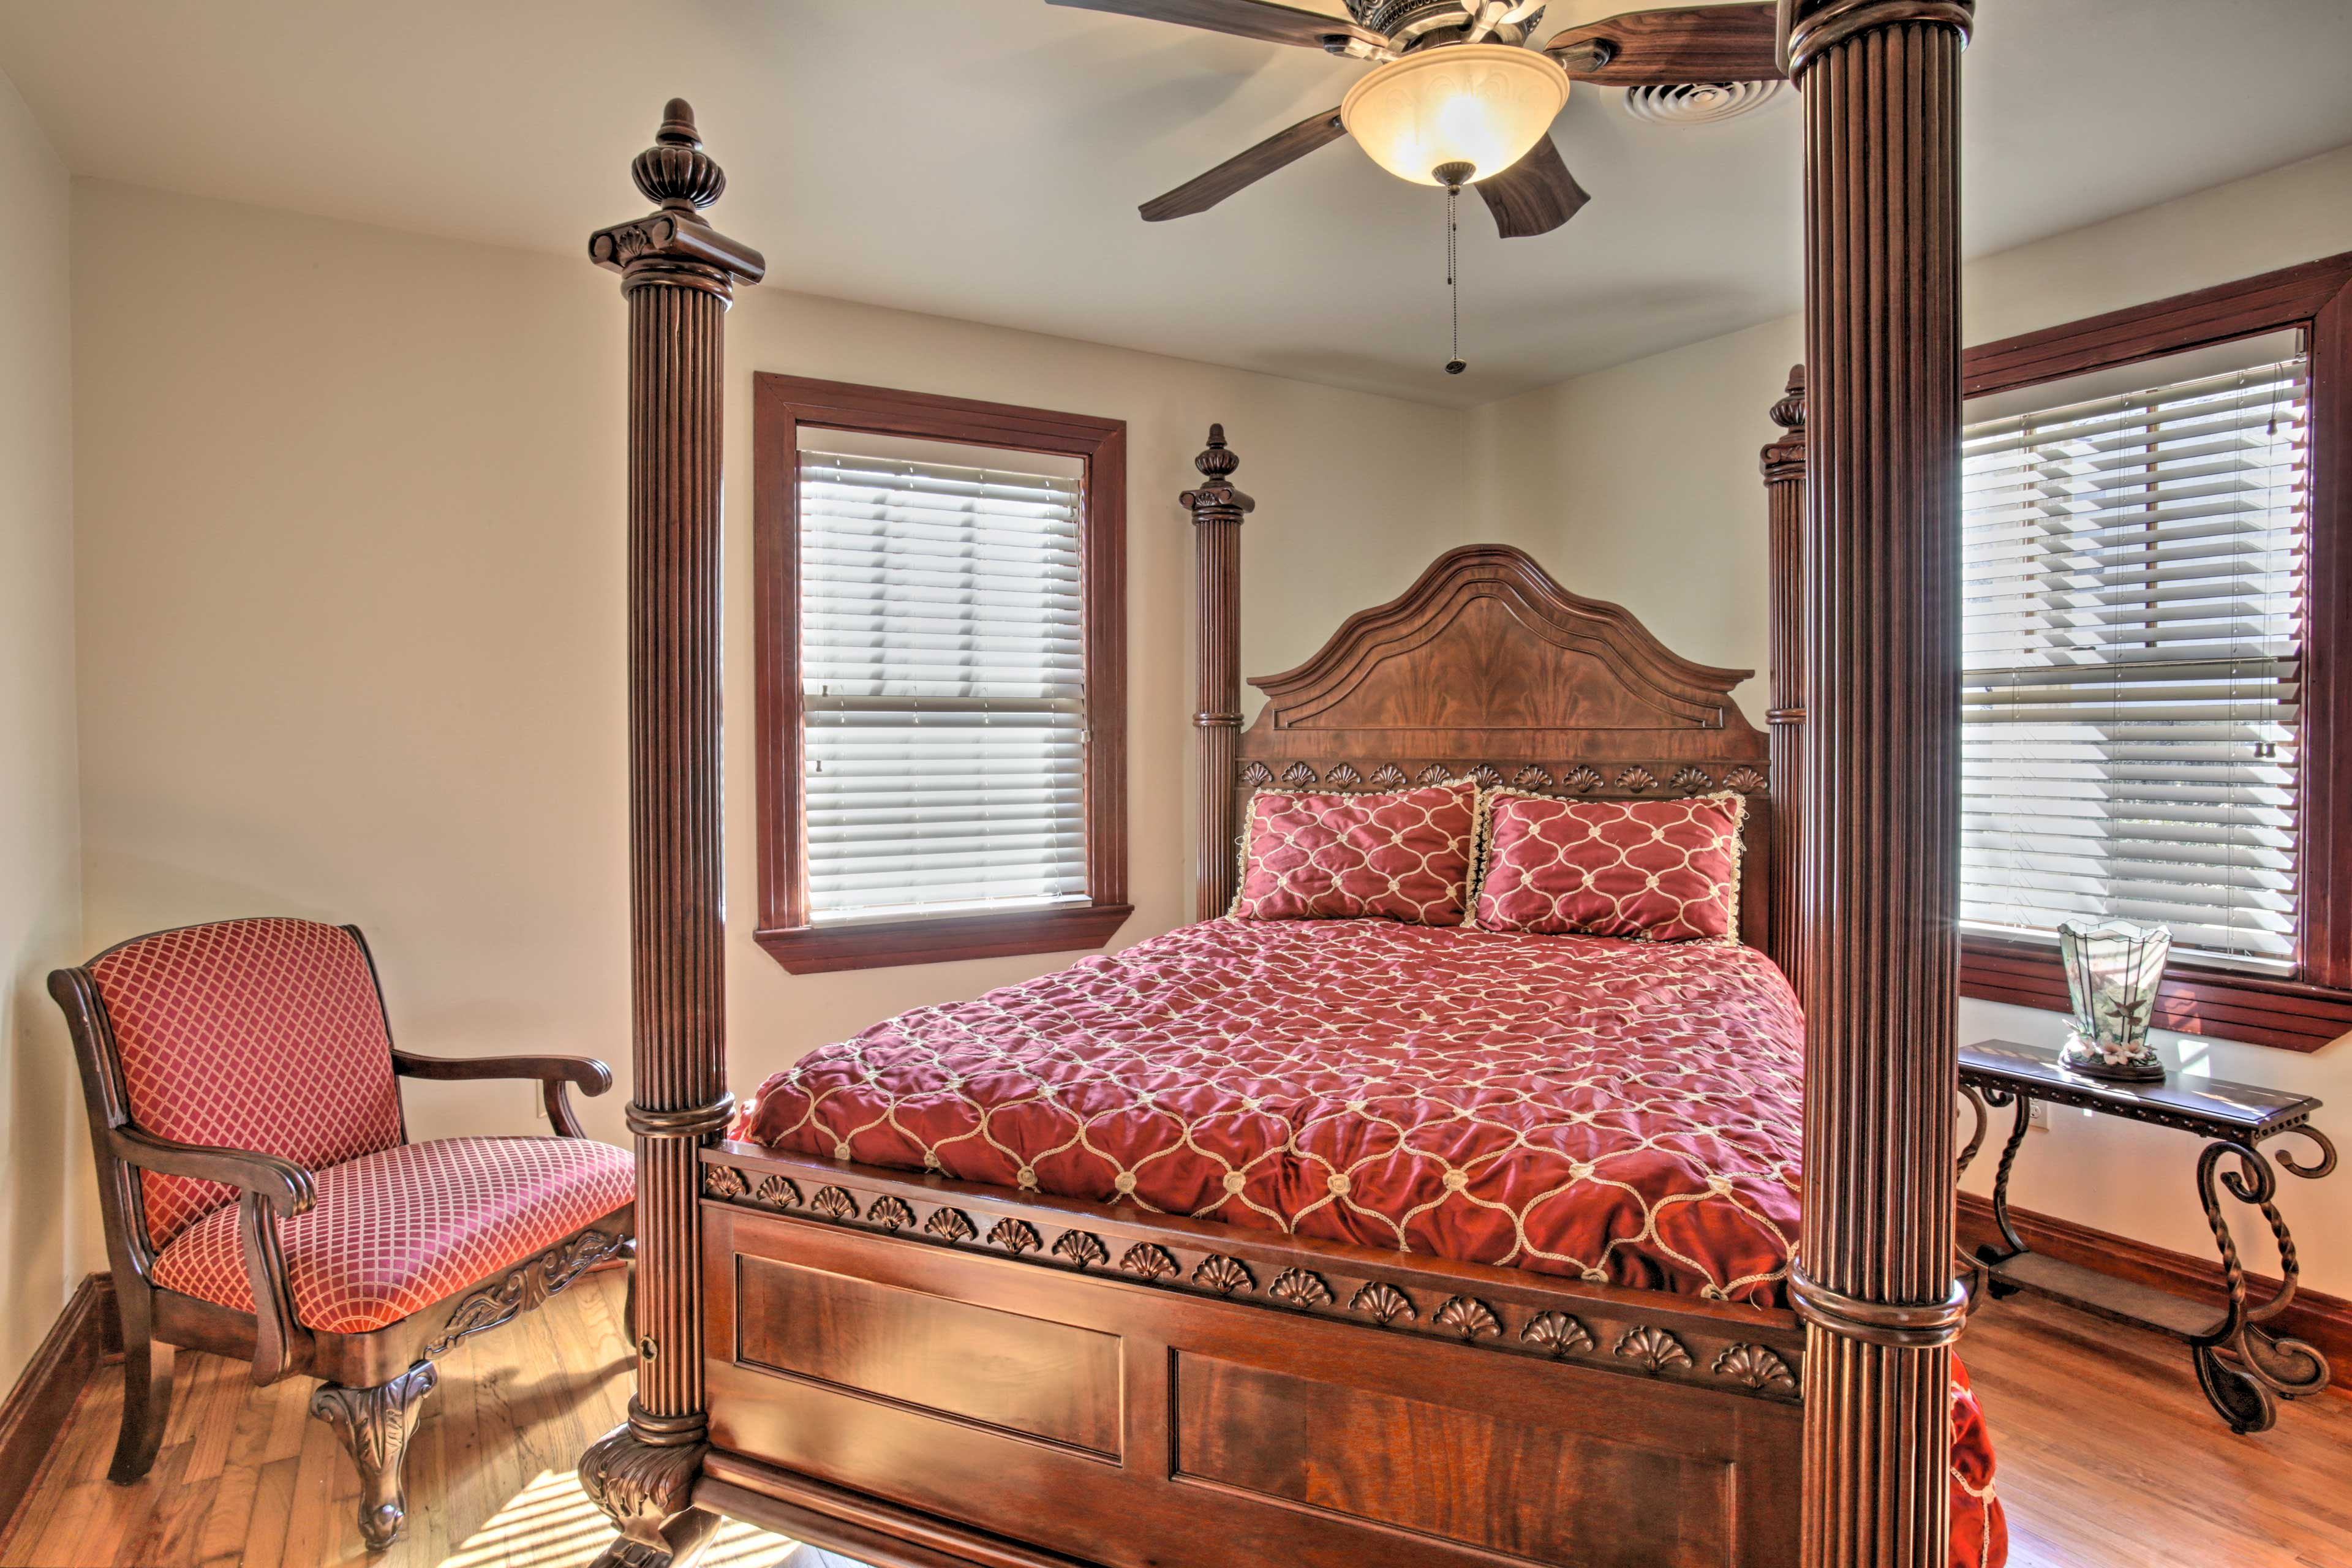 You'll feel royal and relaxed when you settle into this 4-poster bed.